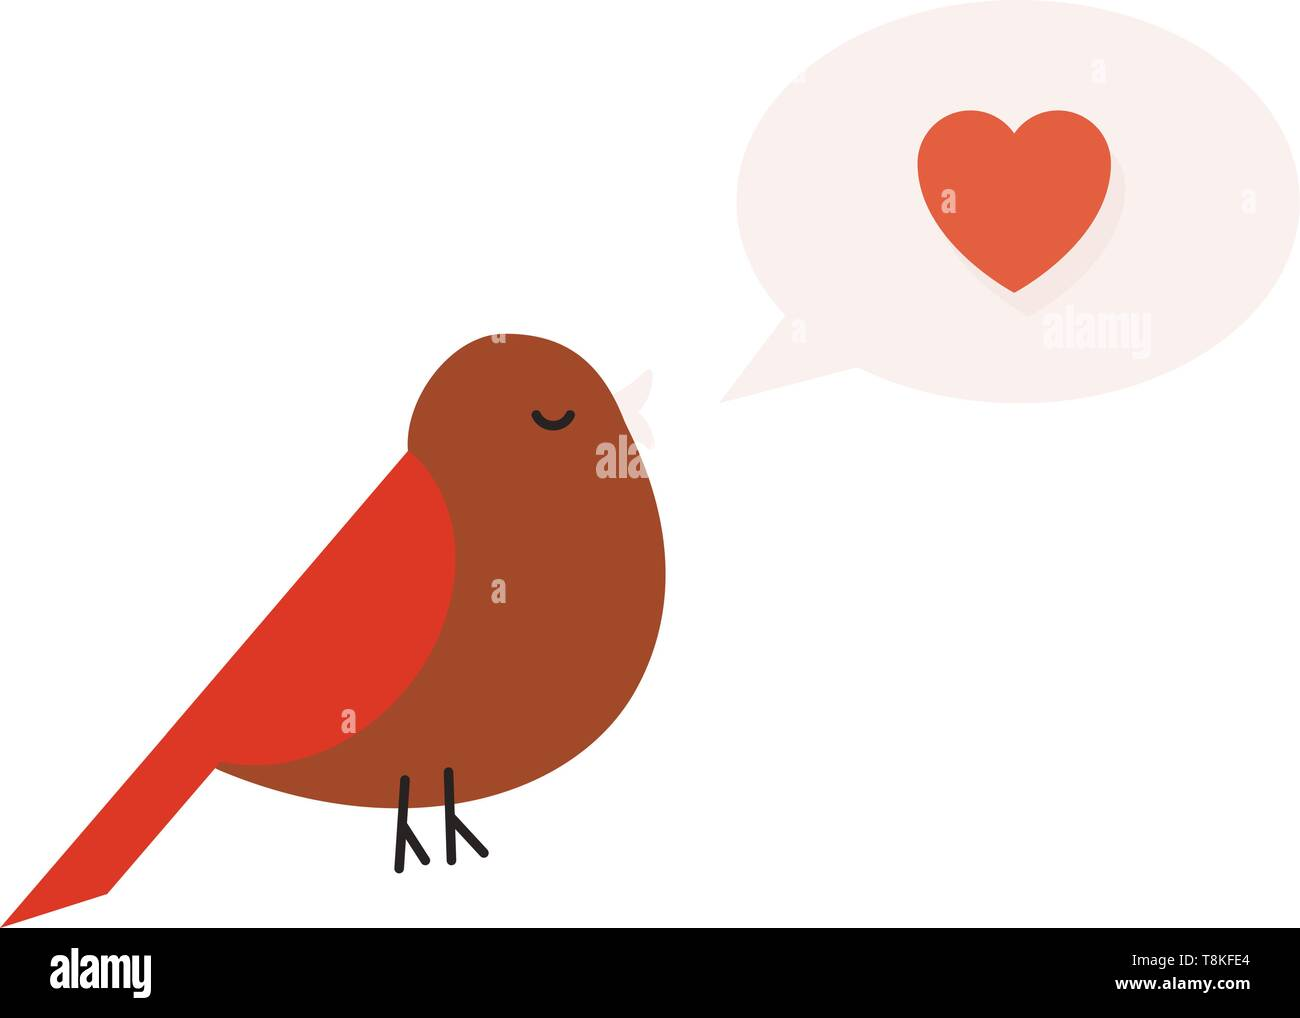 A bird is a warm blooded creature with feathers and wings, typically able to fly., vector, color drawing or illustration. - Stock Vector